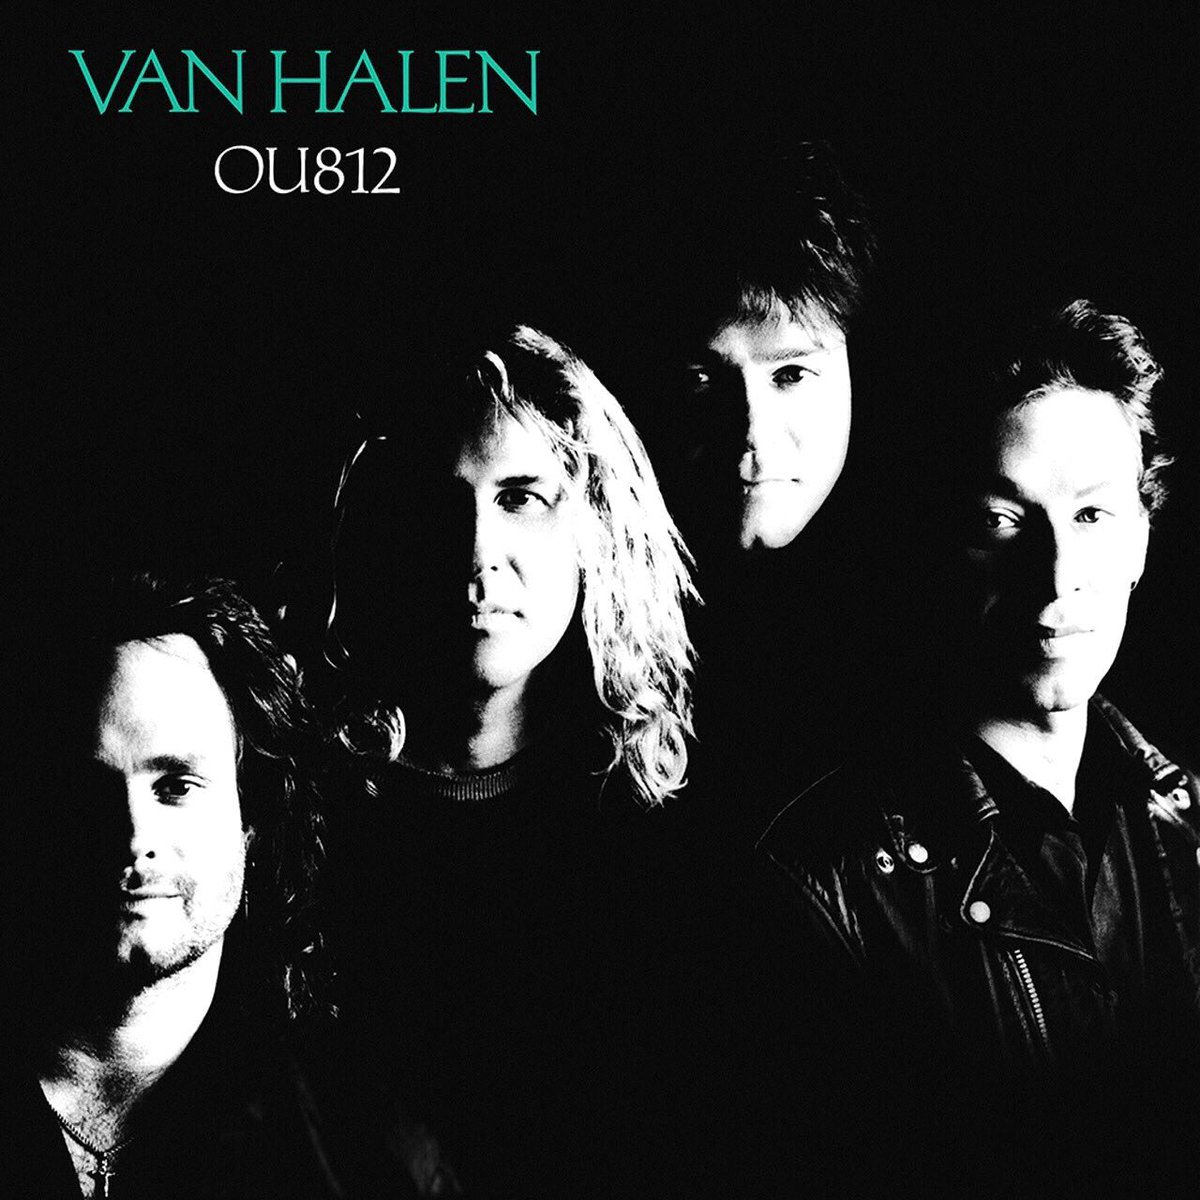 @VanHalen released their eighth studio album 'OU812' ('Oh You Ate One Too') 32 years ago today, May 24, 1988 <br>http://pic.twitter.com/ge6IYiEYJI